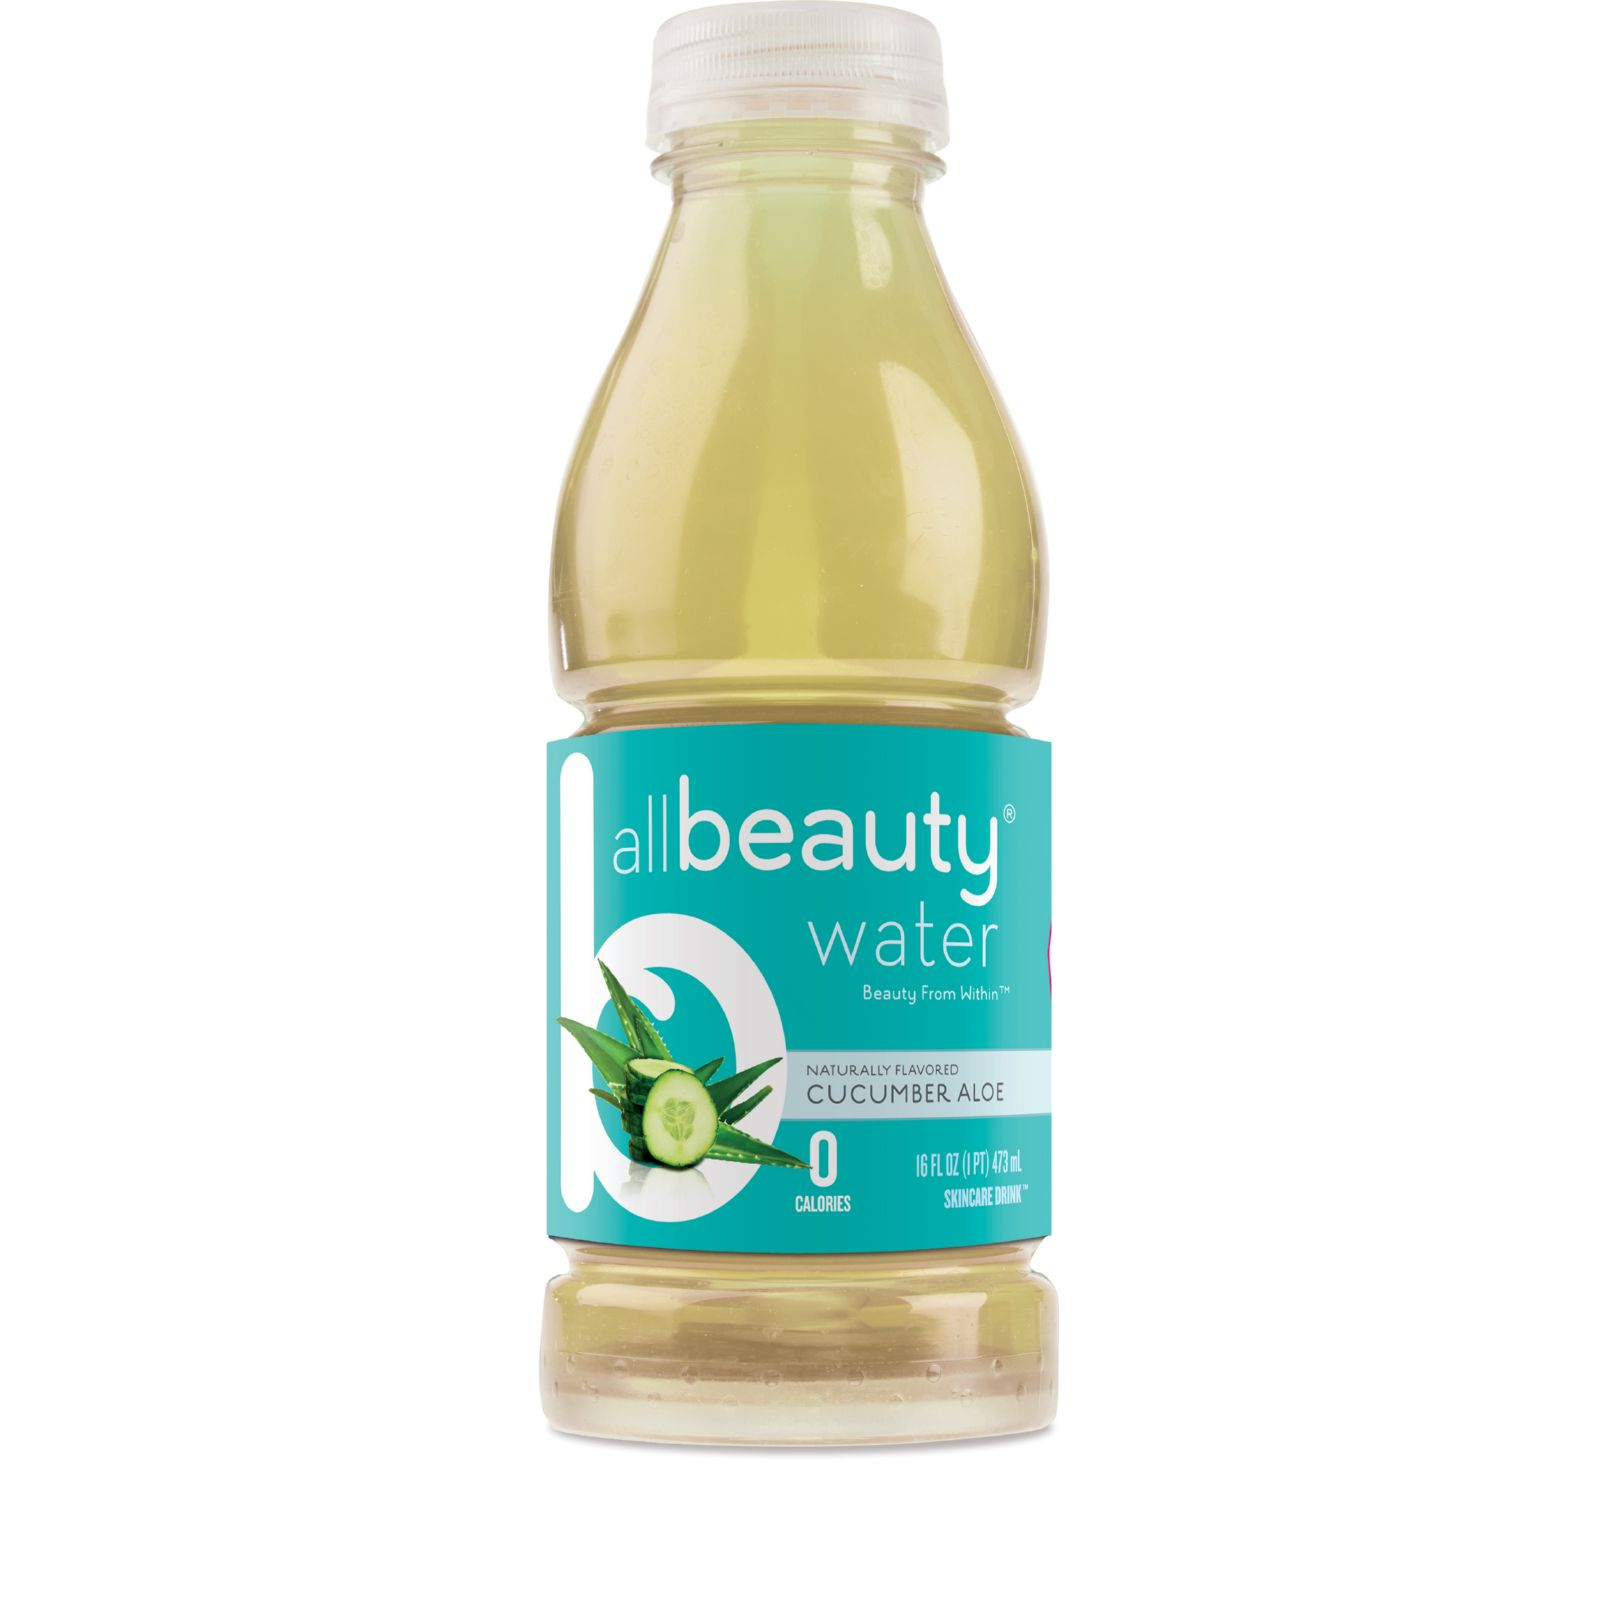 All Beauty Water Skincare Drink  Cucumber Aloe  16 oz  Case of 12